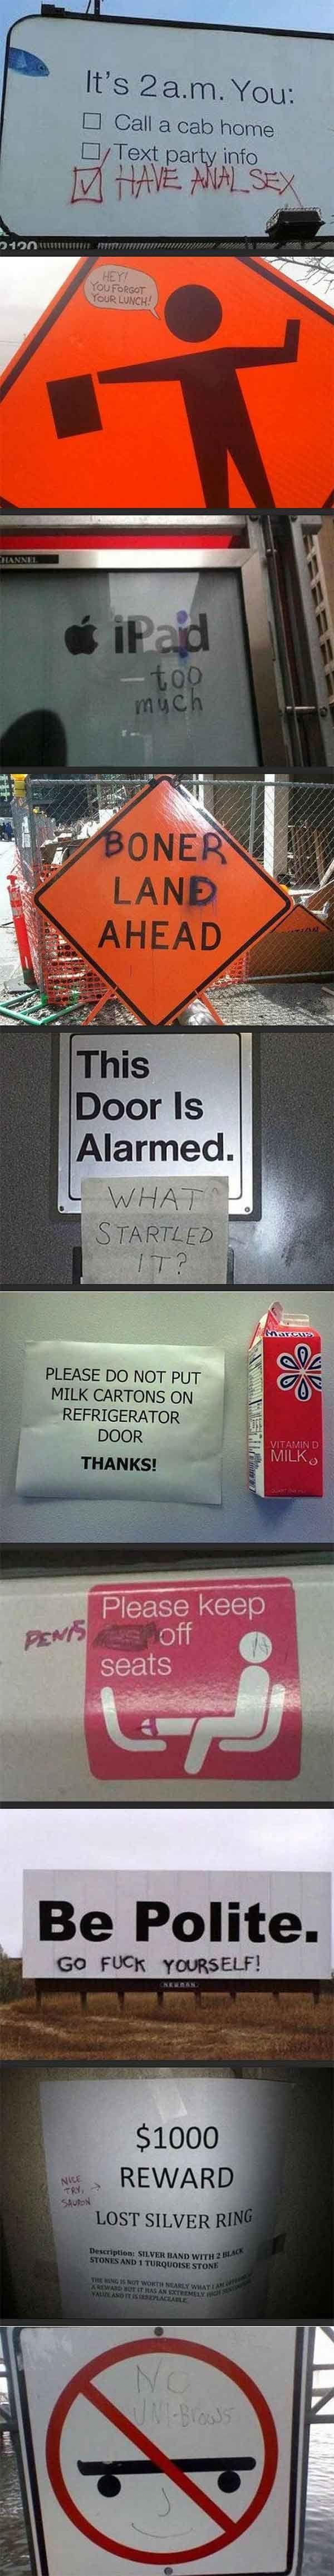 Graffiti is no laughing matter... except when it is. http://ibeebz.com